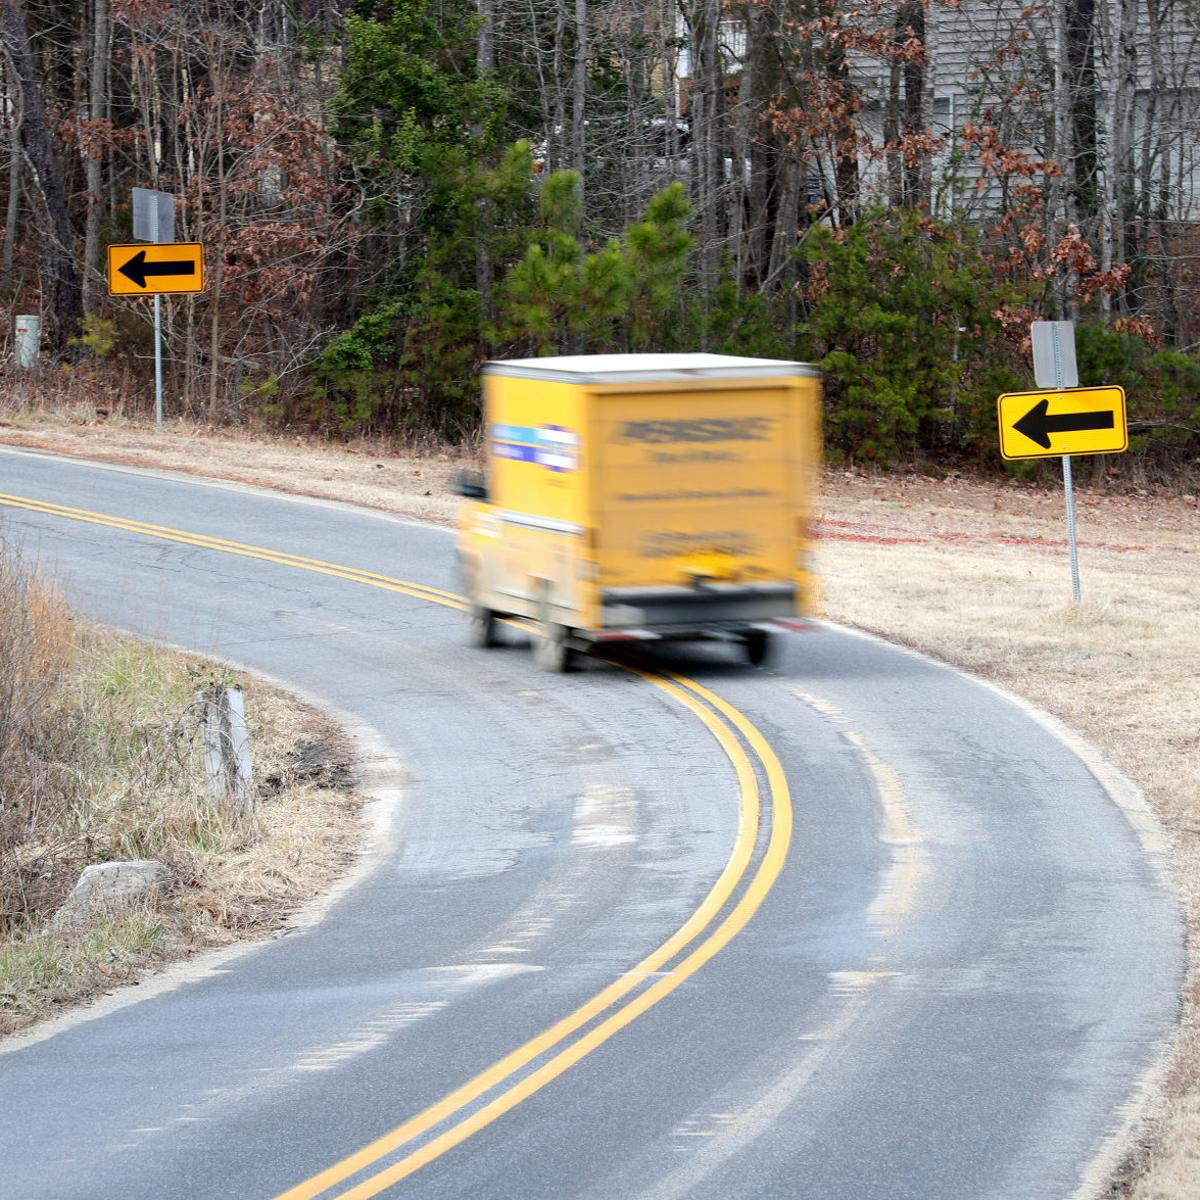 At fatal crash site in Greene, road solutions may be difficult